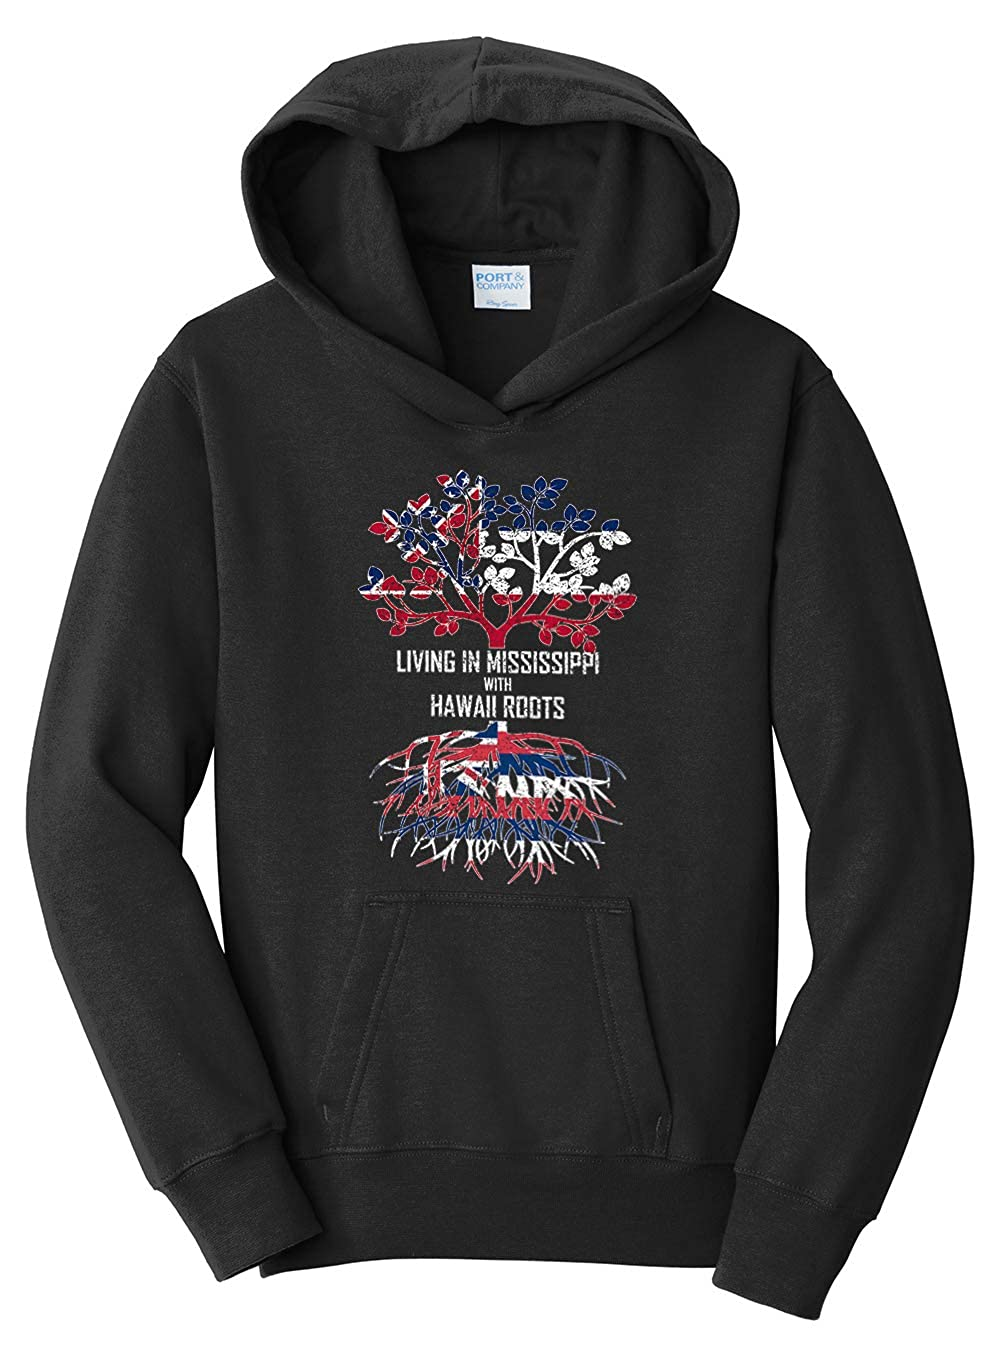 Tenacitee Girls Living in Mississippi with Hawaii Roots Hooded Sweatshirt